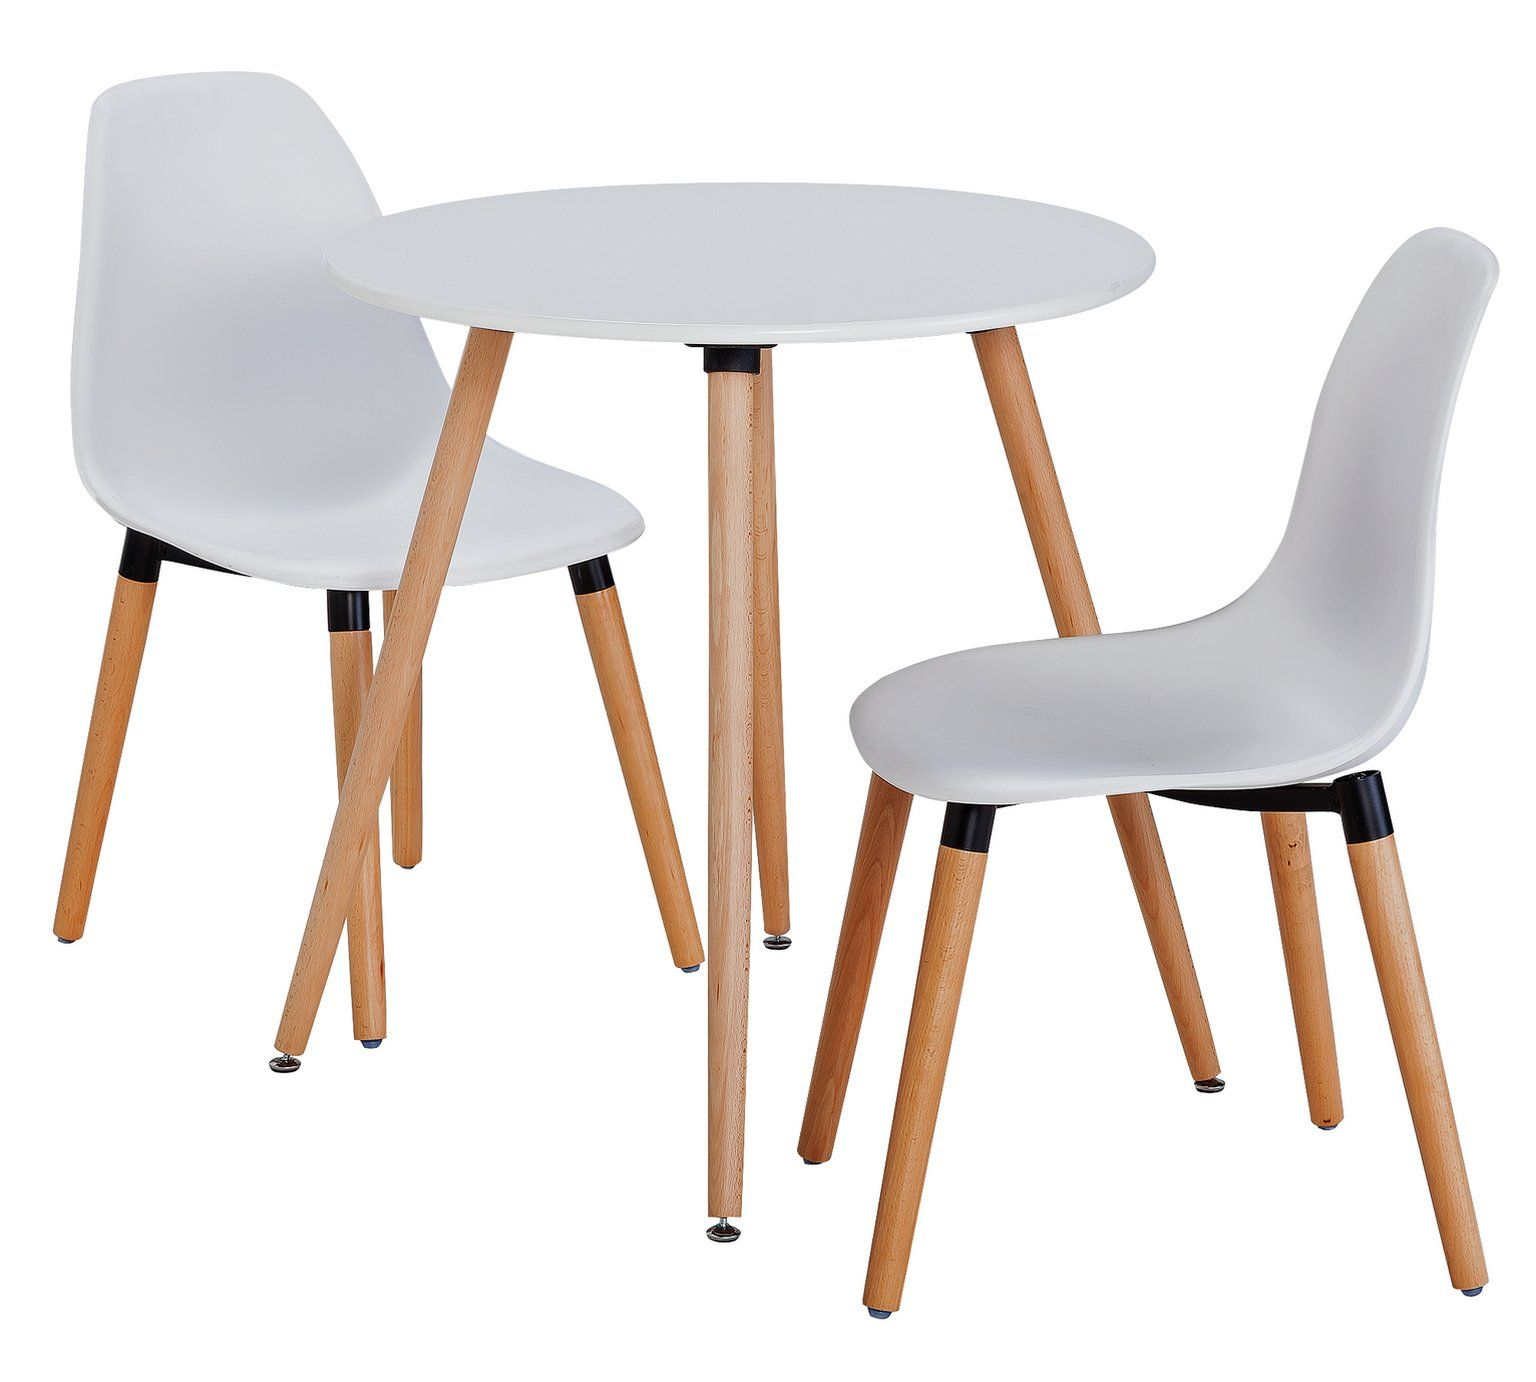 Argos Round Garden Table And Chairs: Buy HOME Berlin Round Dining Table & 2 Chairs